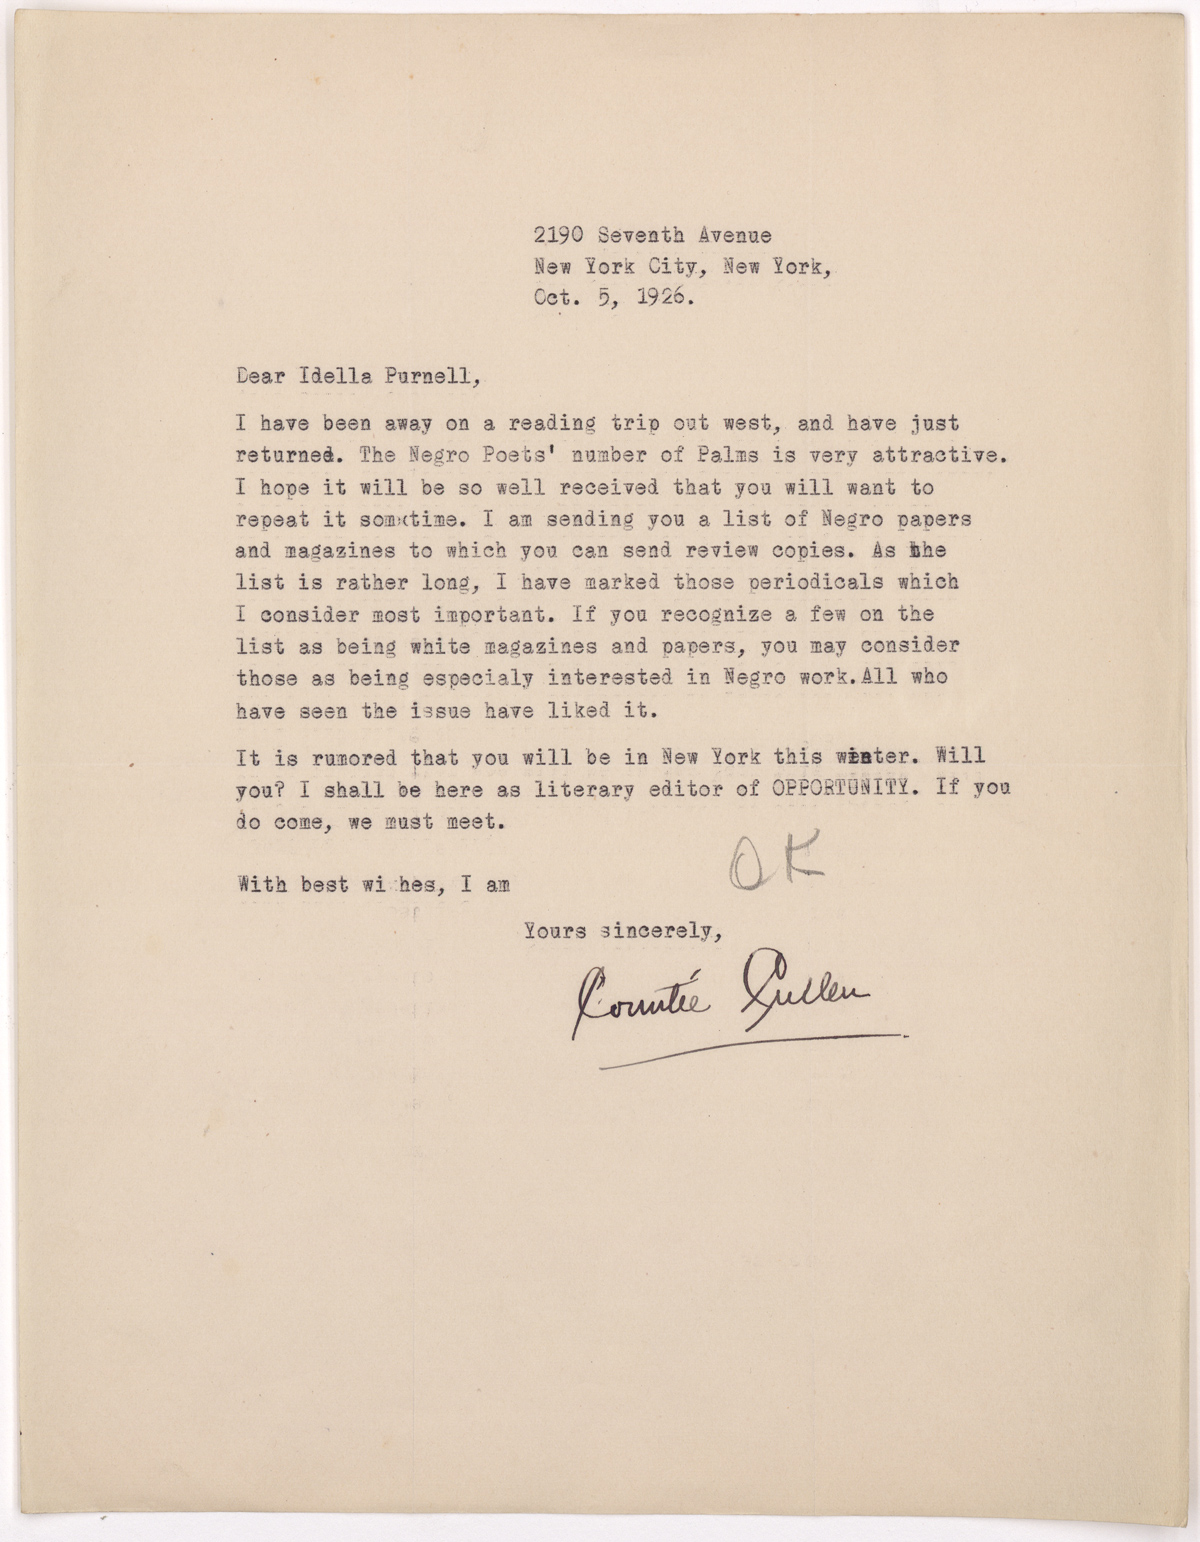 On October 5, 1926 Cullen wrote to Purnell, pleased with the appearance of the special issue of Palms and hoping that it might be repeated in the future.